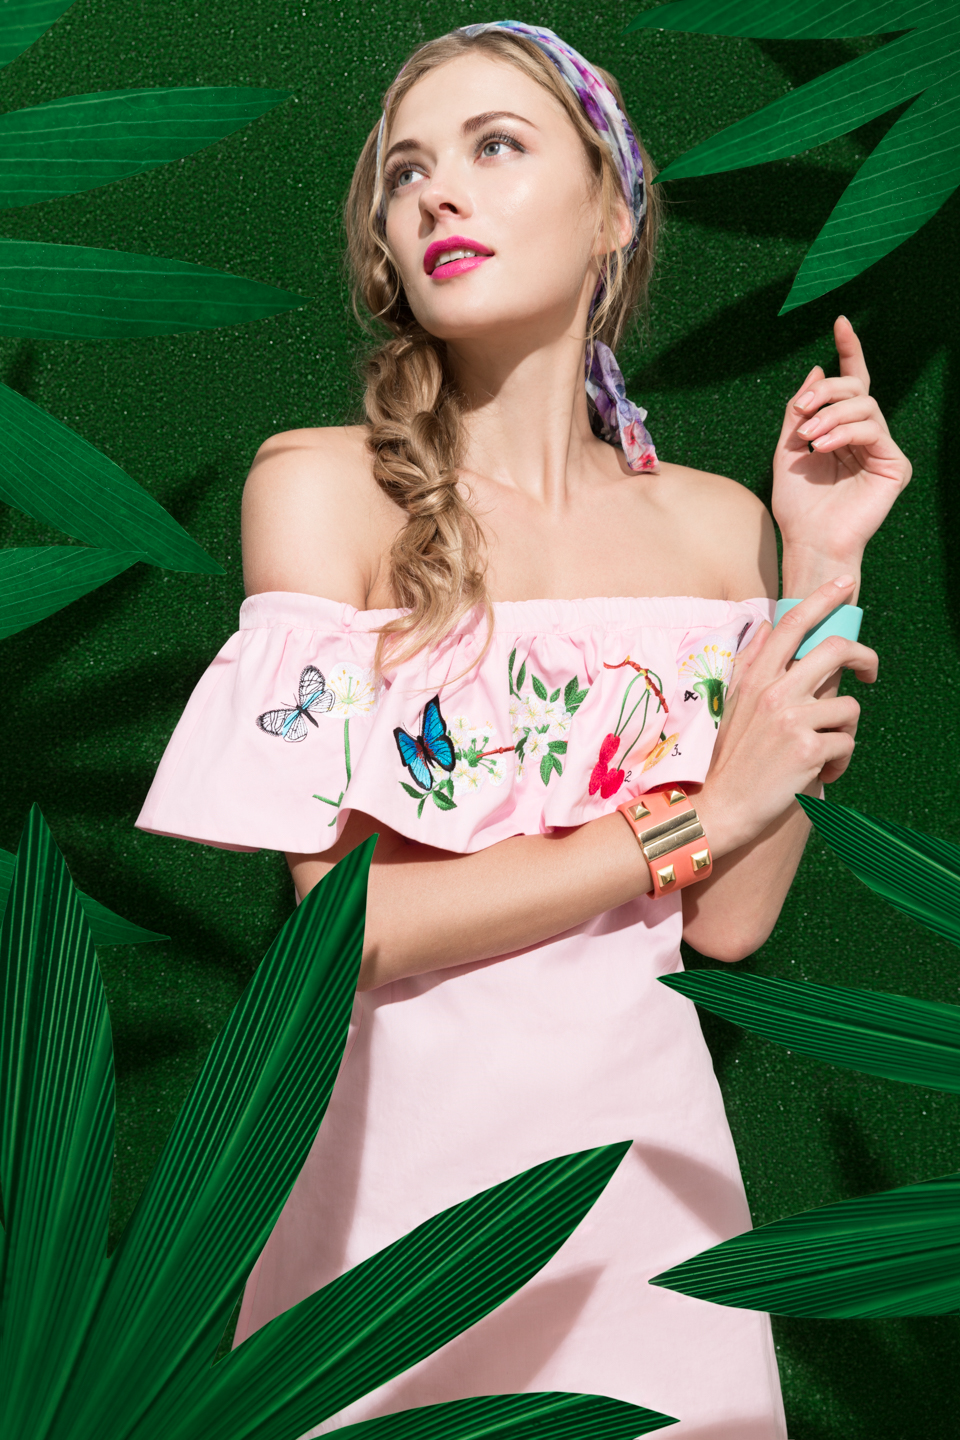 Tropical Holiday - fashion editorial for Switch Magazine - Galli / Trevisan photographers